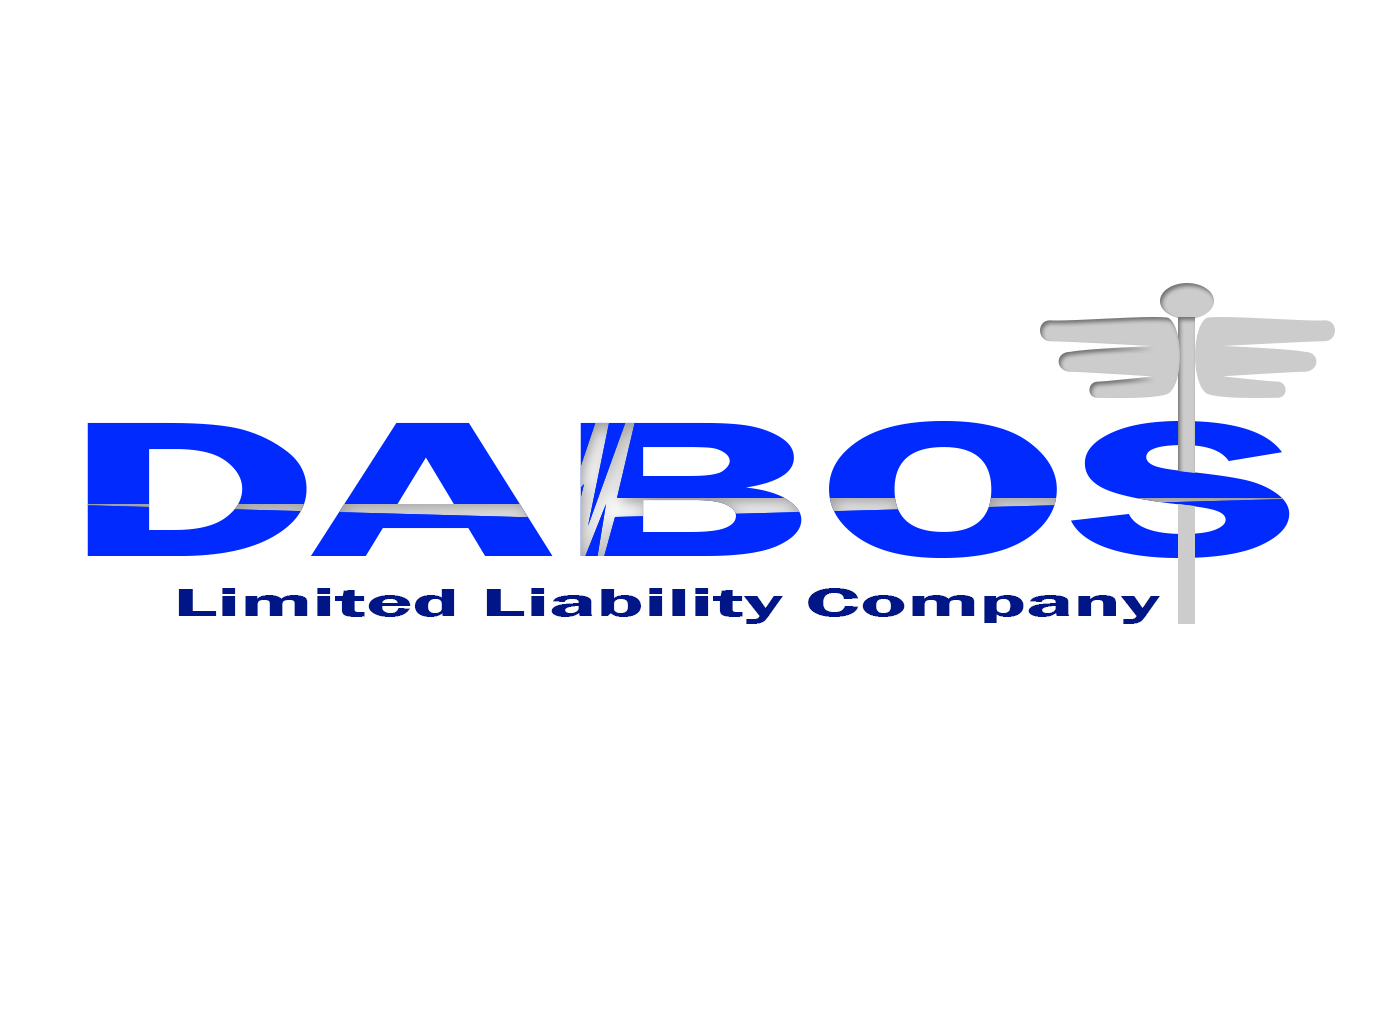 Logo Design by drunkman - Entry No. 152 in the Logo Design Contest Imaginative Logo Design for DABOS, Limited Liability Company.